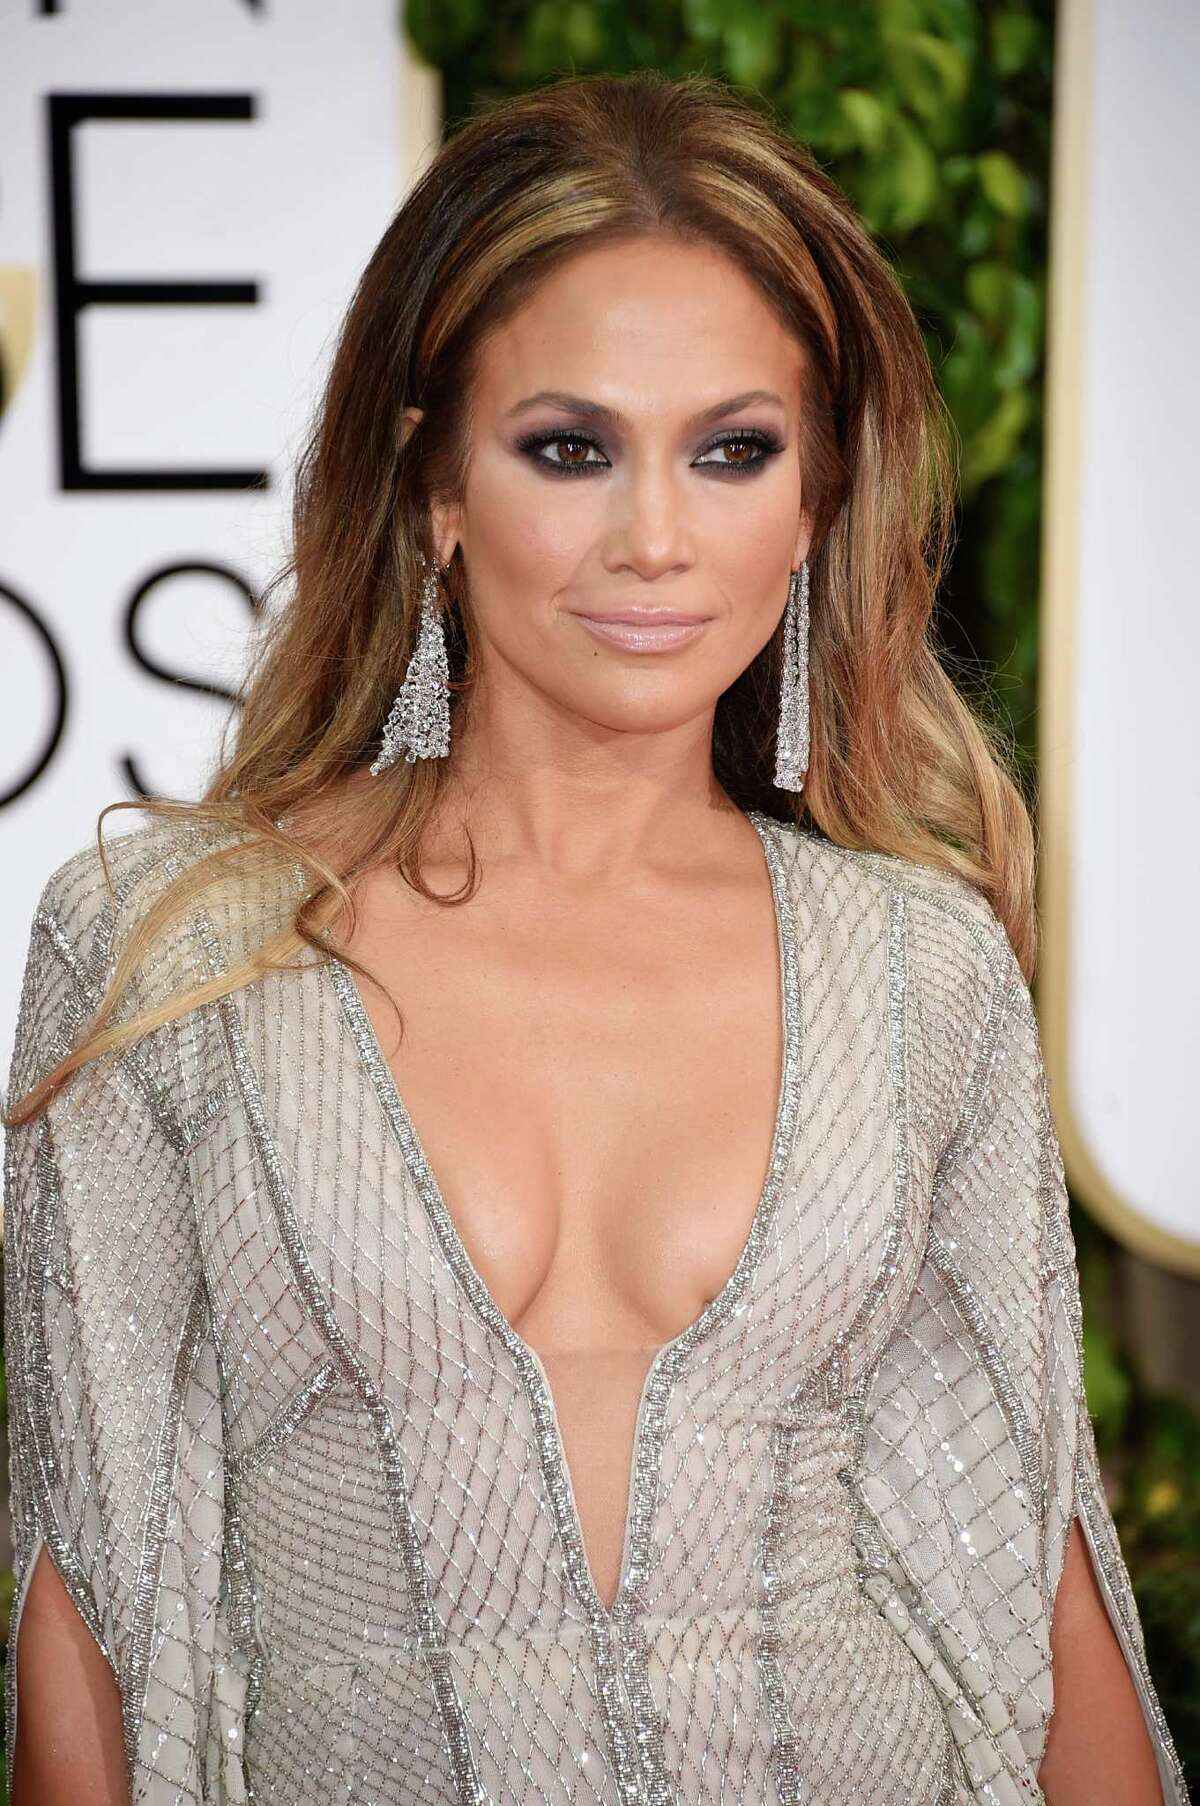 BEVERLY HILLS, CA - JANUARY 11: Actress/singer Jennifer Lopez attends the 72nd Annual Golden Globe Awards at The Beverly Hilton Hotel on January 11, 2015 in Beverly Hills, California.